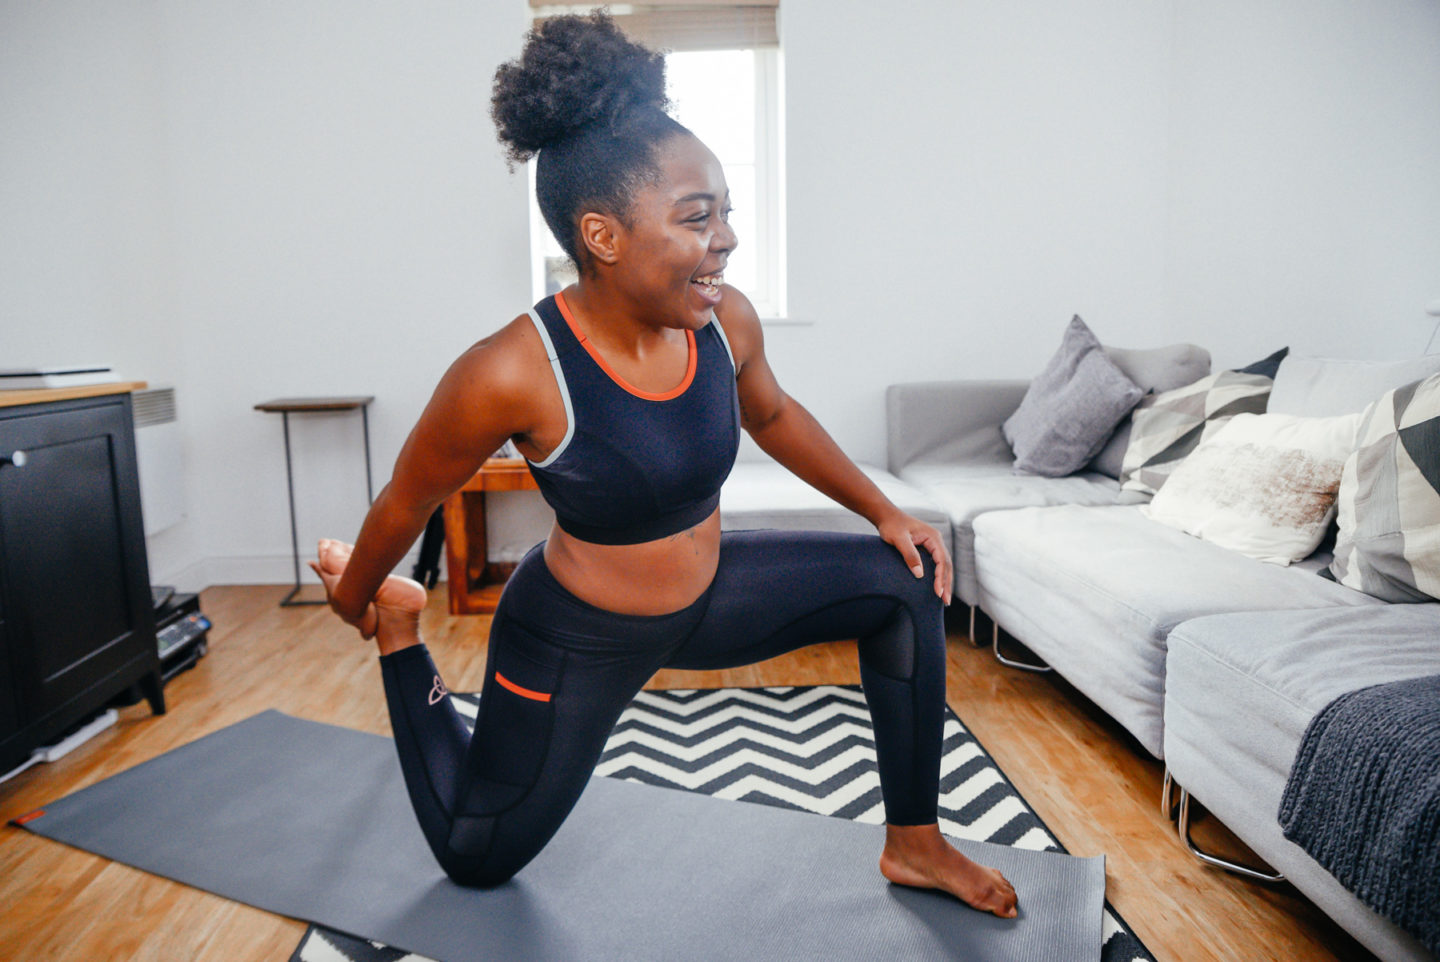 Get Closer To Splits With These 4 Stretches For Splits